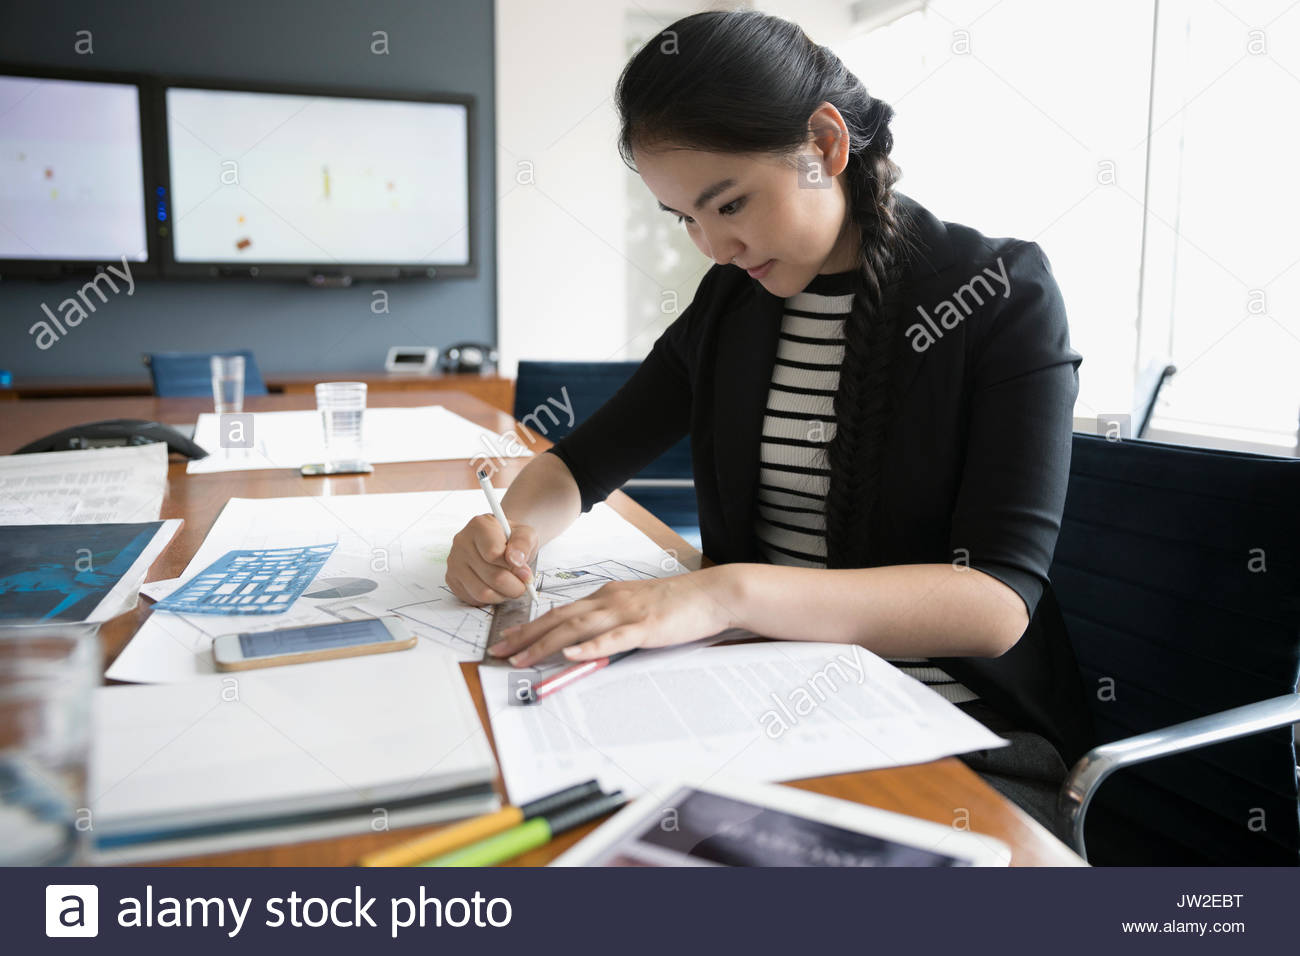 Female architect drafting blueprints in conference room - Stock Image